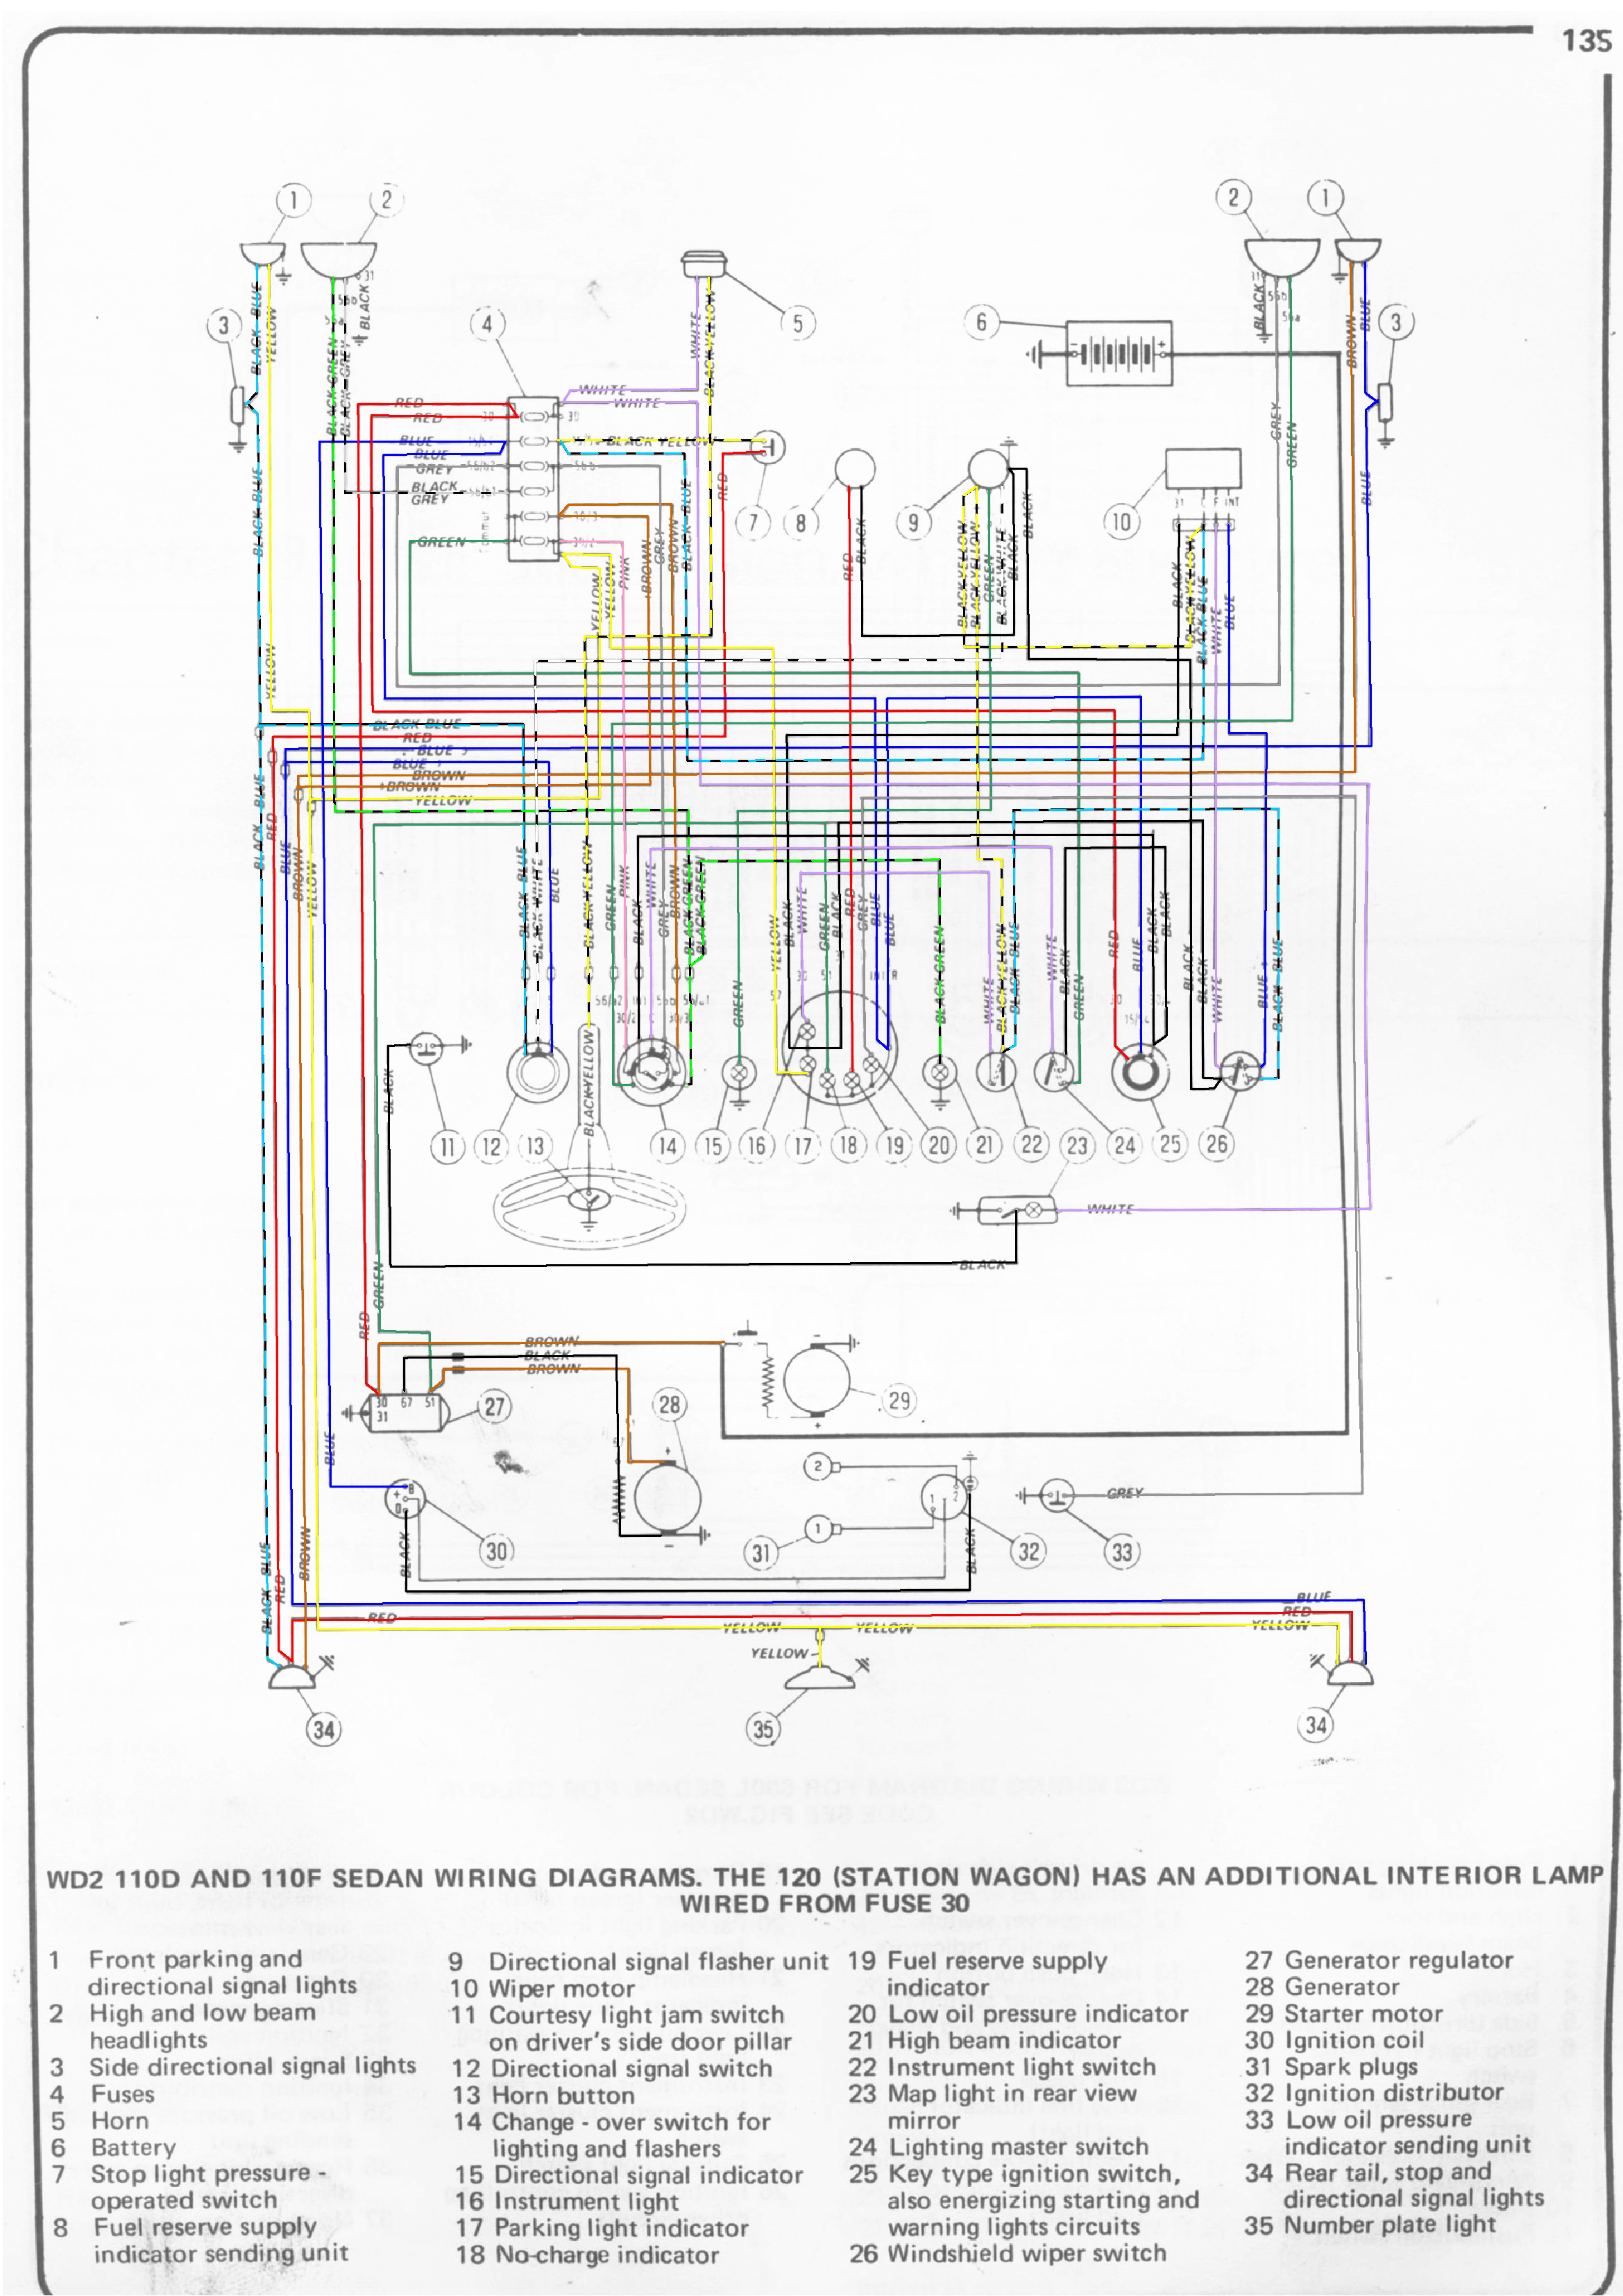 Oliver 88 Wiring Diagram Detailed Schematics Ford Yt16 77 Generator Trusted Diagrams 1947 For Roadcrop